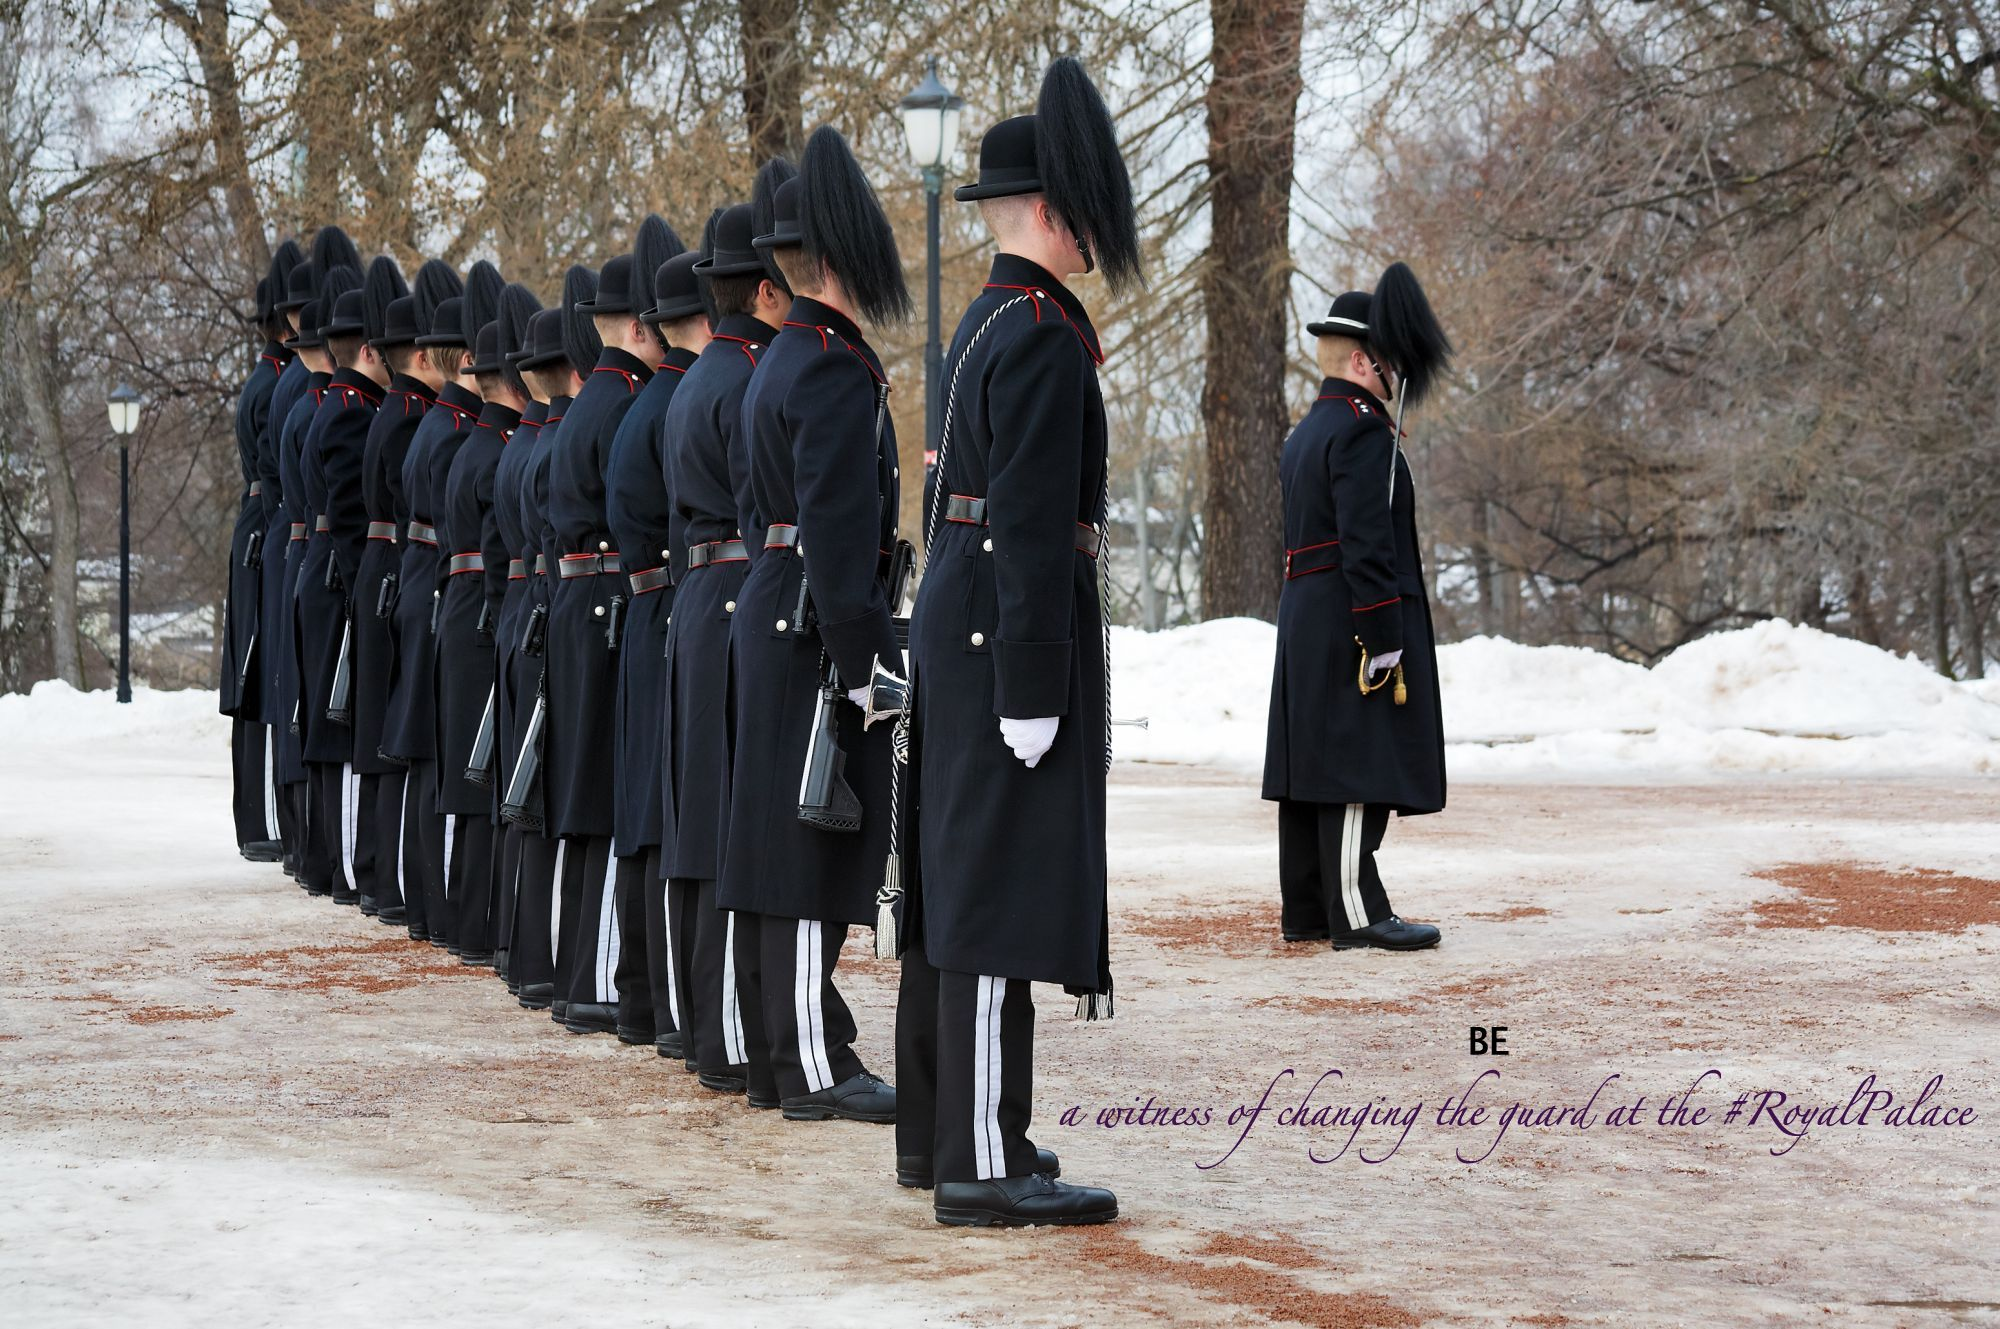 BE a witness of changing the guard at the #RoyalPalace